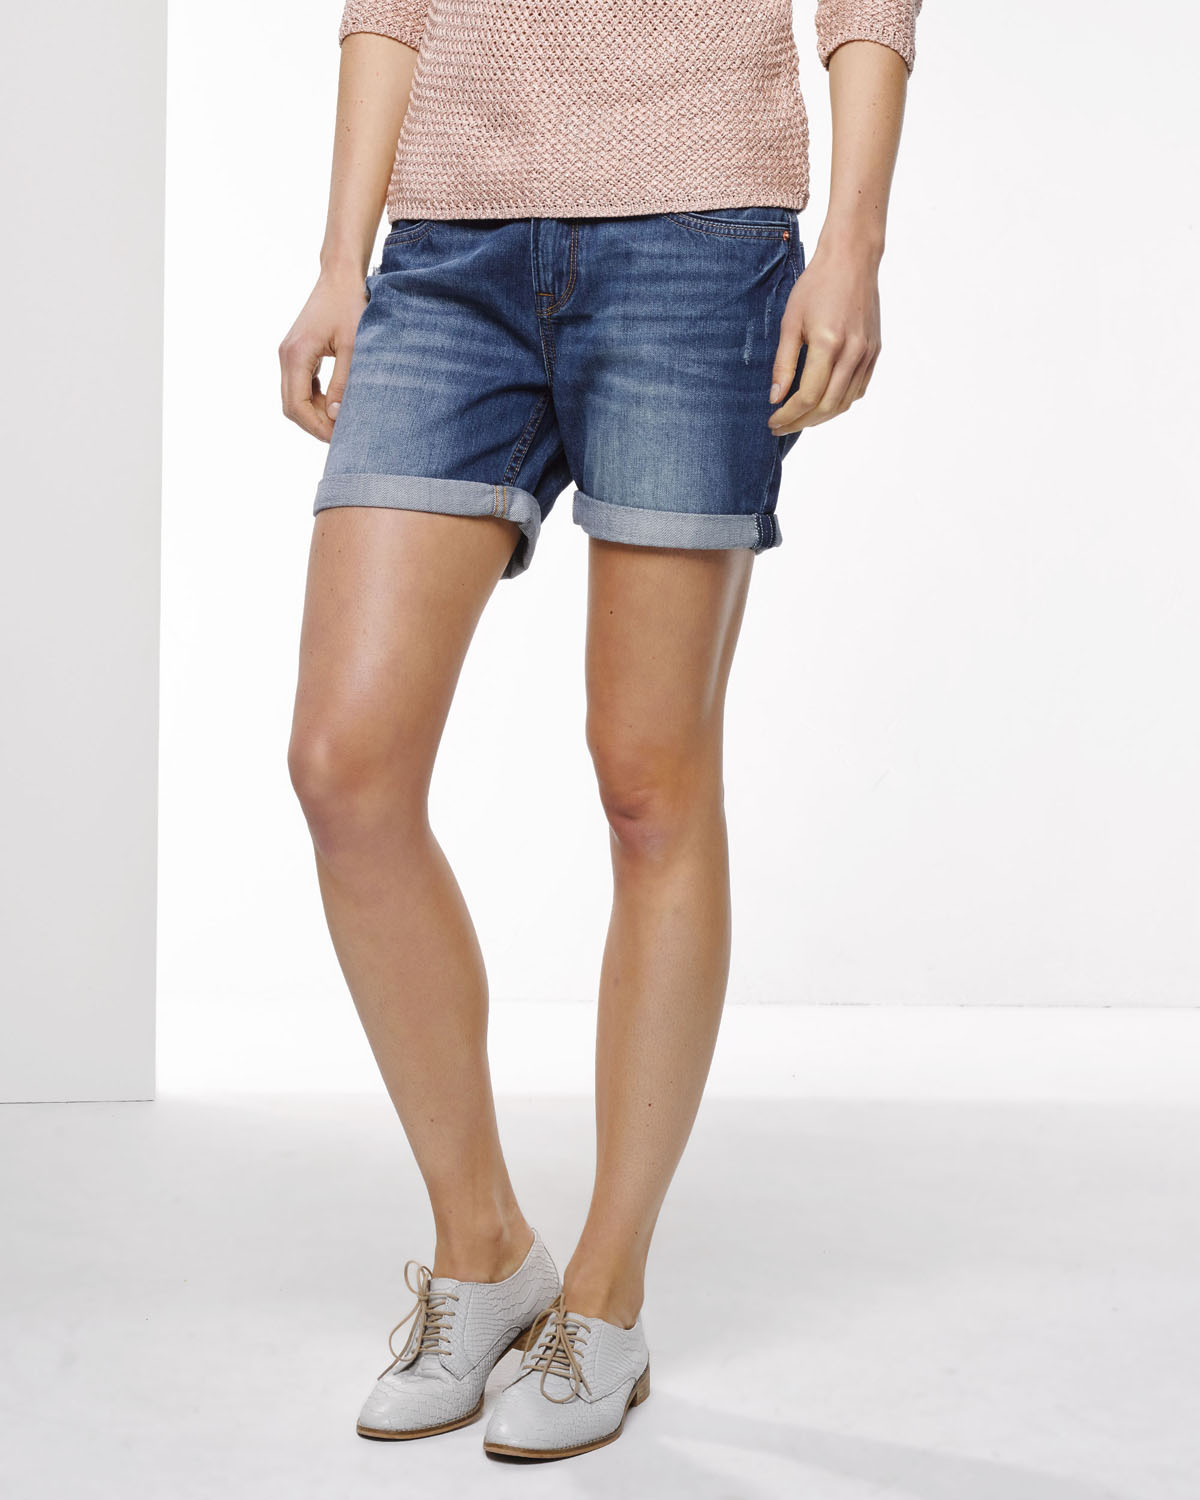 HUE Boyfriend Shorts have been a staple of my wardrobe for years. I love them, so please don't ever stop making them! But I have to say that I don't much care for the shorter rise/crotch and wider leg and cuff of these new ones I just bought. I'm short, and the 93%(15).